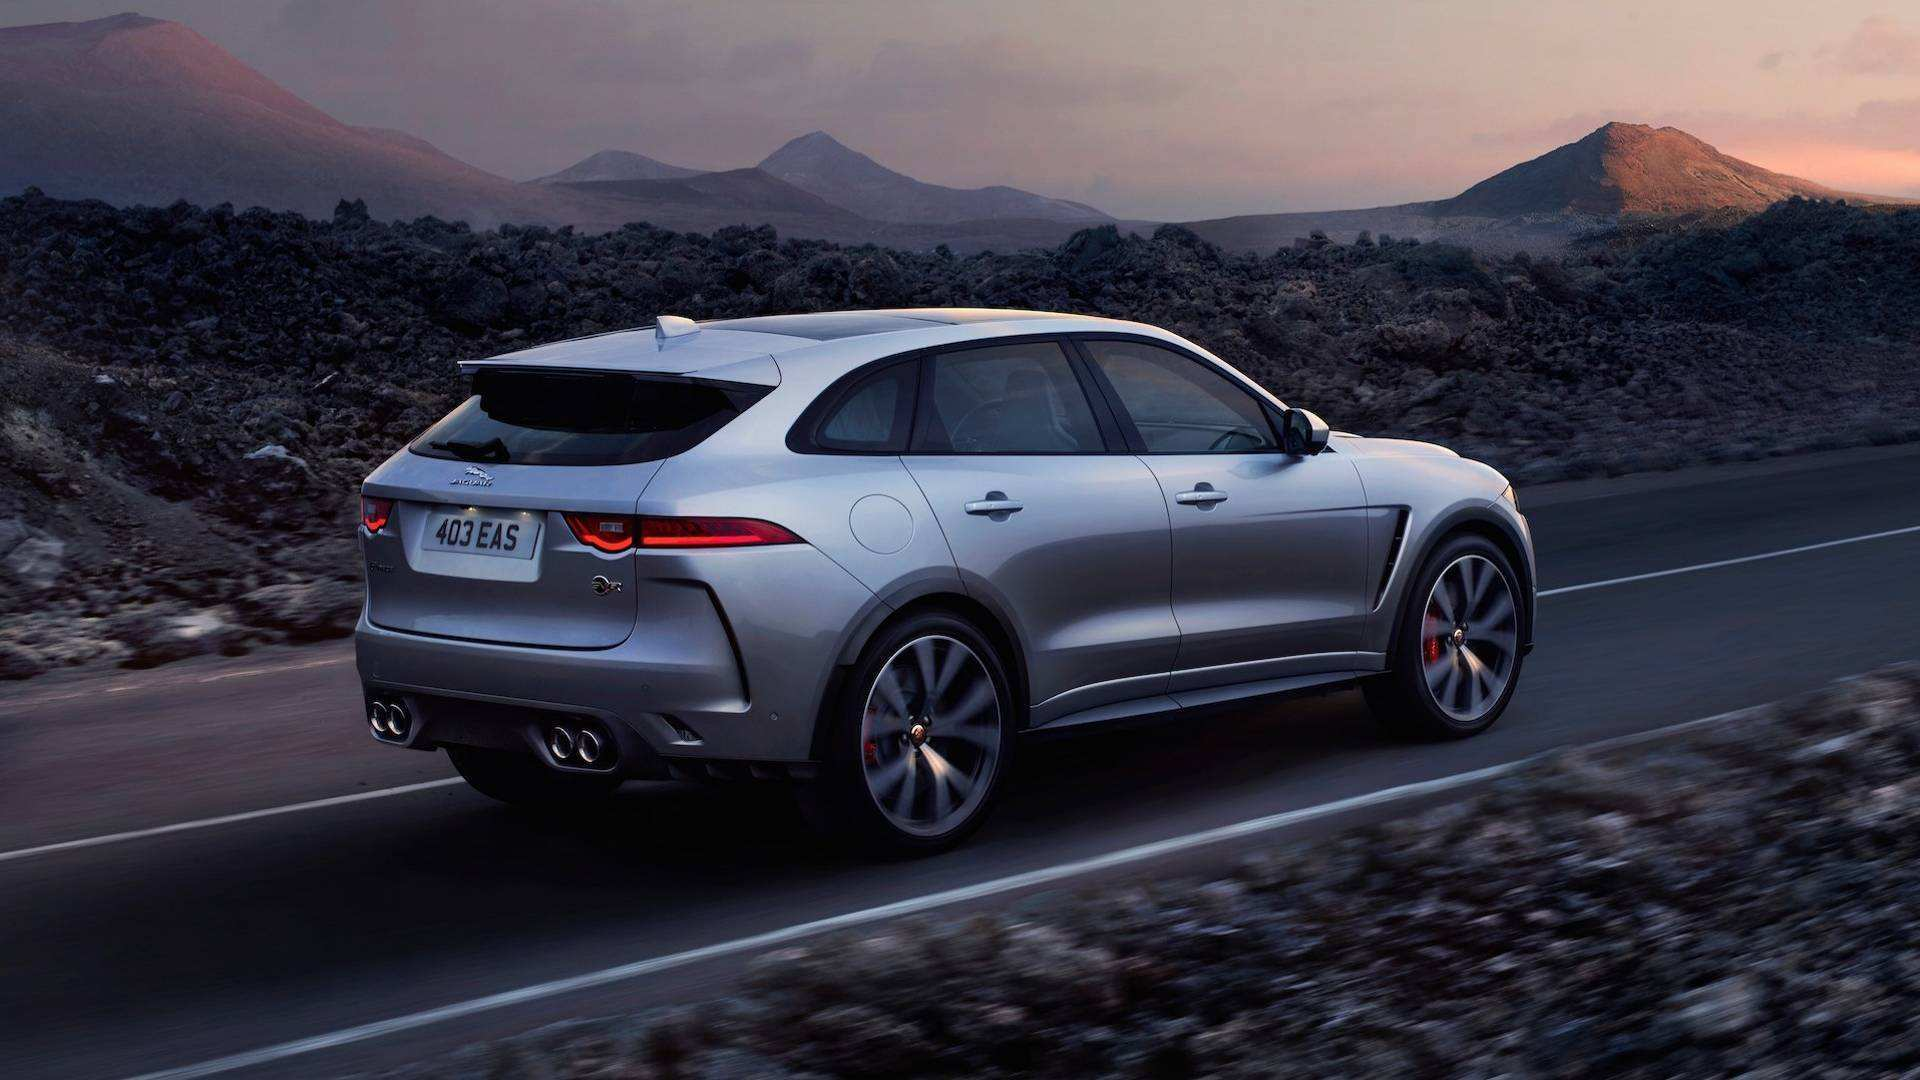 70 Best Review Jaguar F Pace Facelift 2020 Model with Jaguar F Pace Facelift 2020